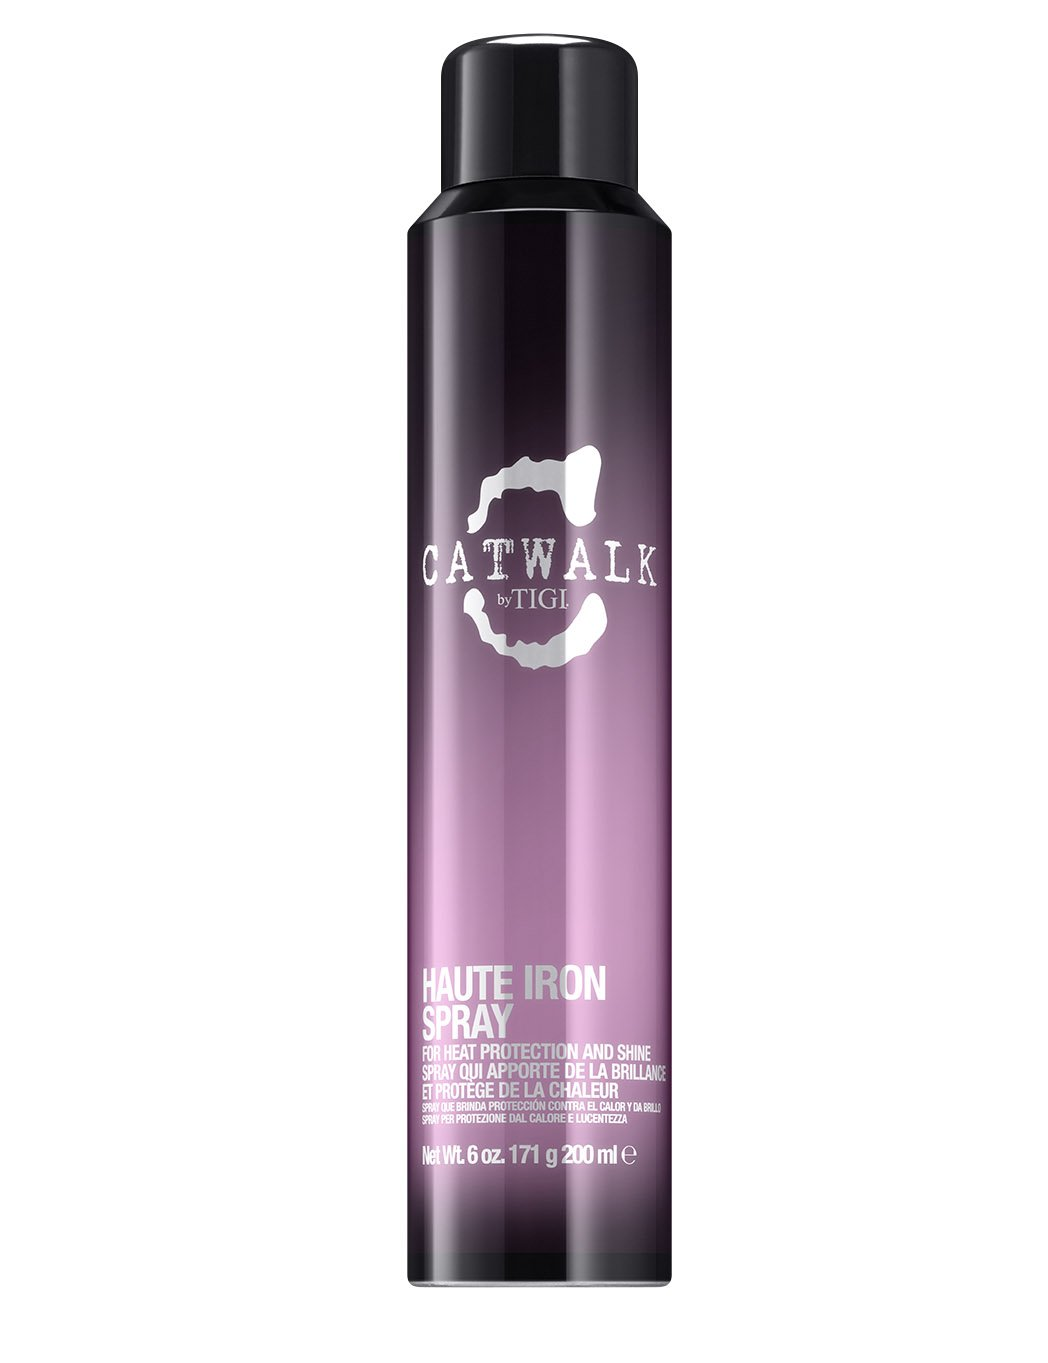 Tigi Cura Capillare, Catwalk Sleek Mystique Haute Iron Spray, 200 ml Tigi Italy 8680 51442